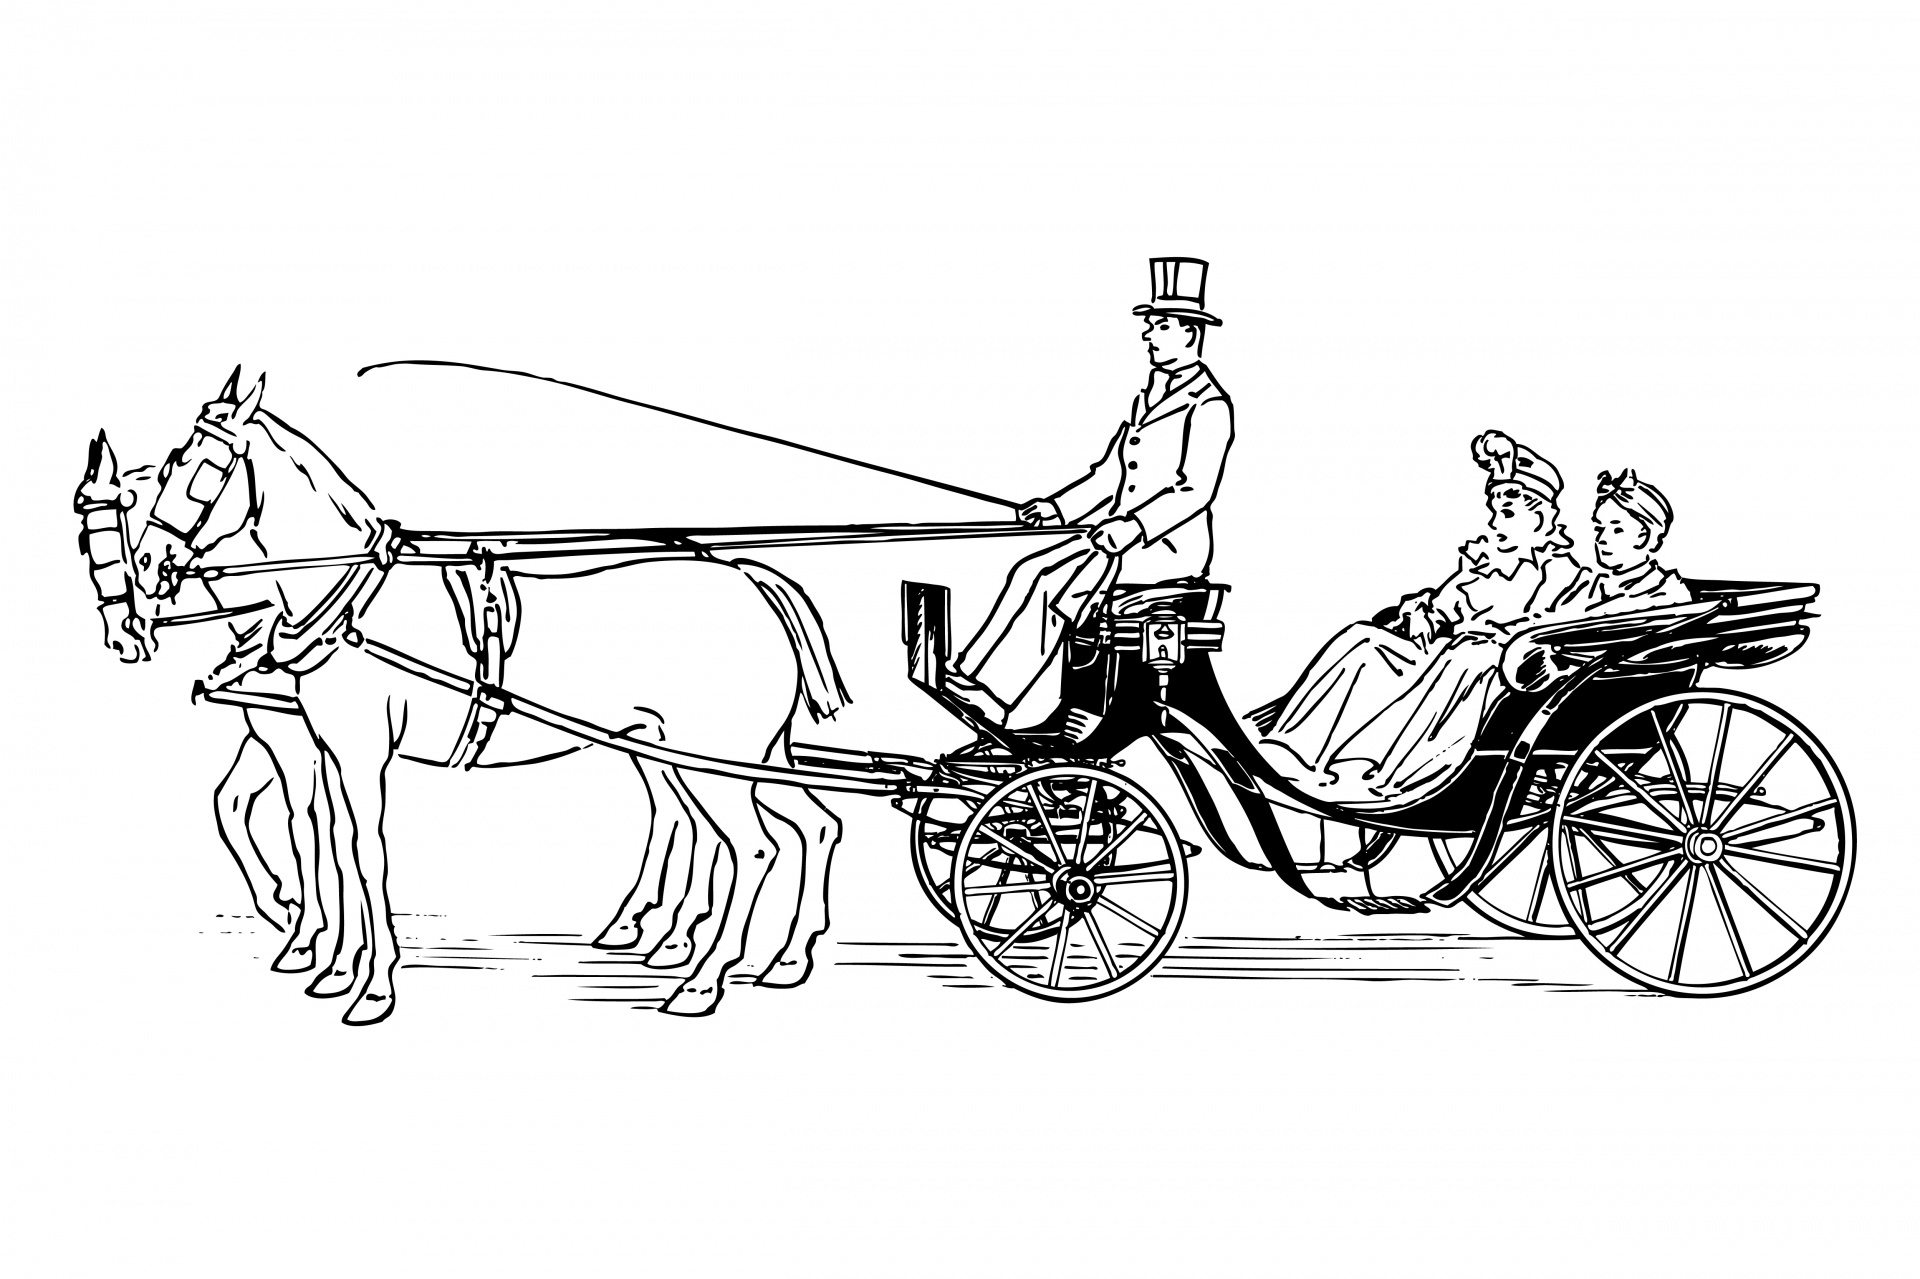 Free Horse Drawn Carriage Cliparts Download Free Clip Art Free Clip Art On Clipart Library